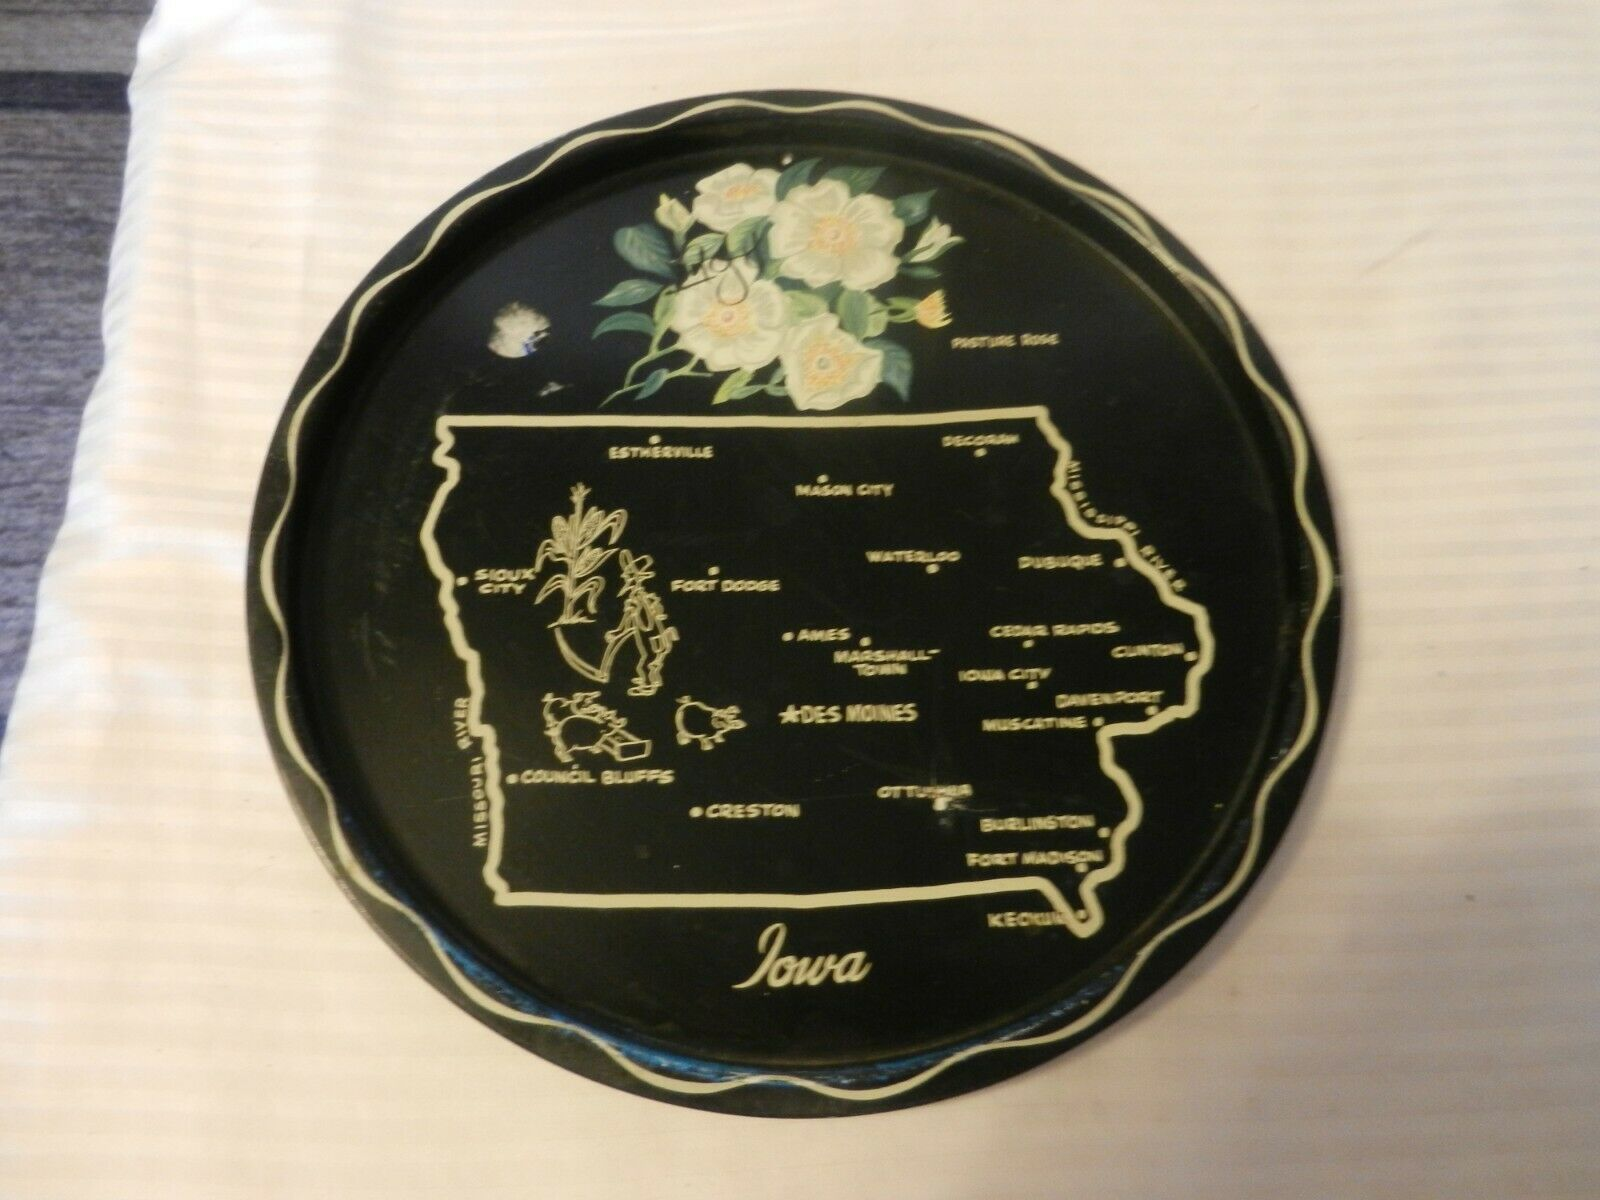 Primary image for Vintage Iowa State Map Black Metal Drink Serving Tray Platter Collectible